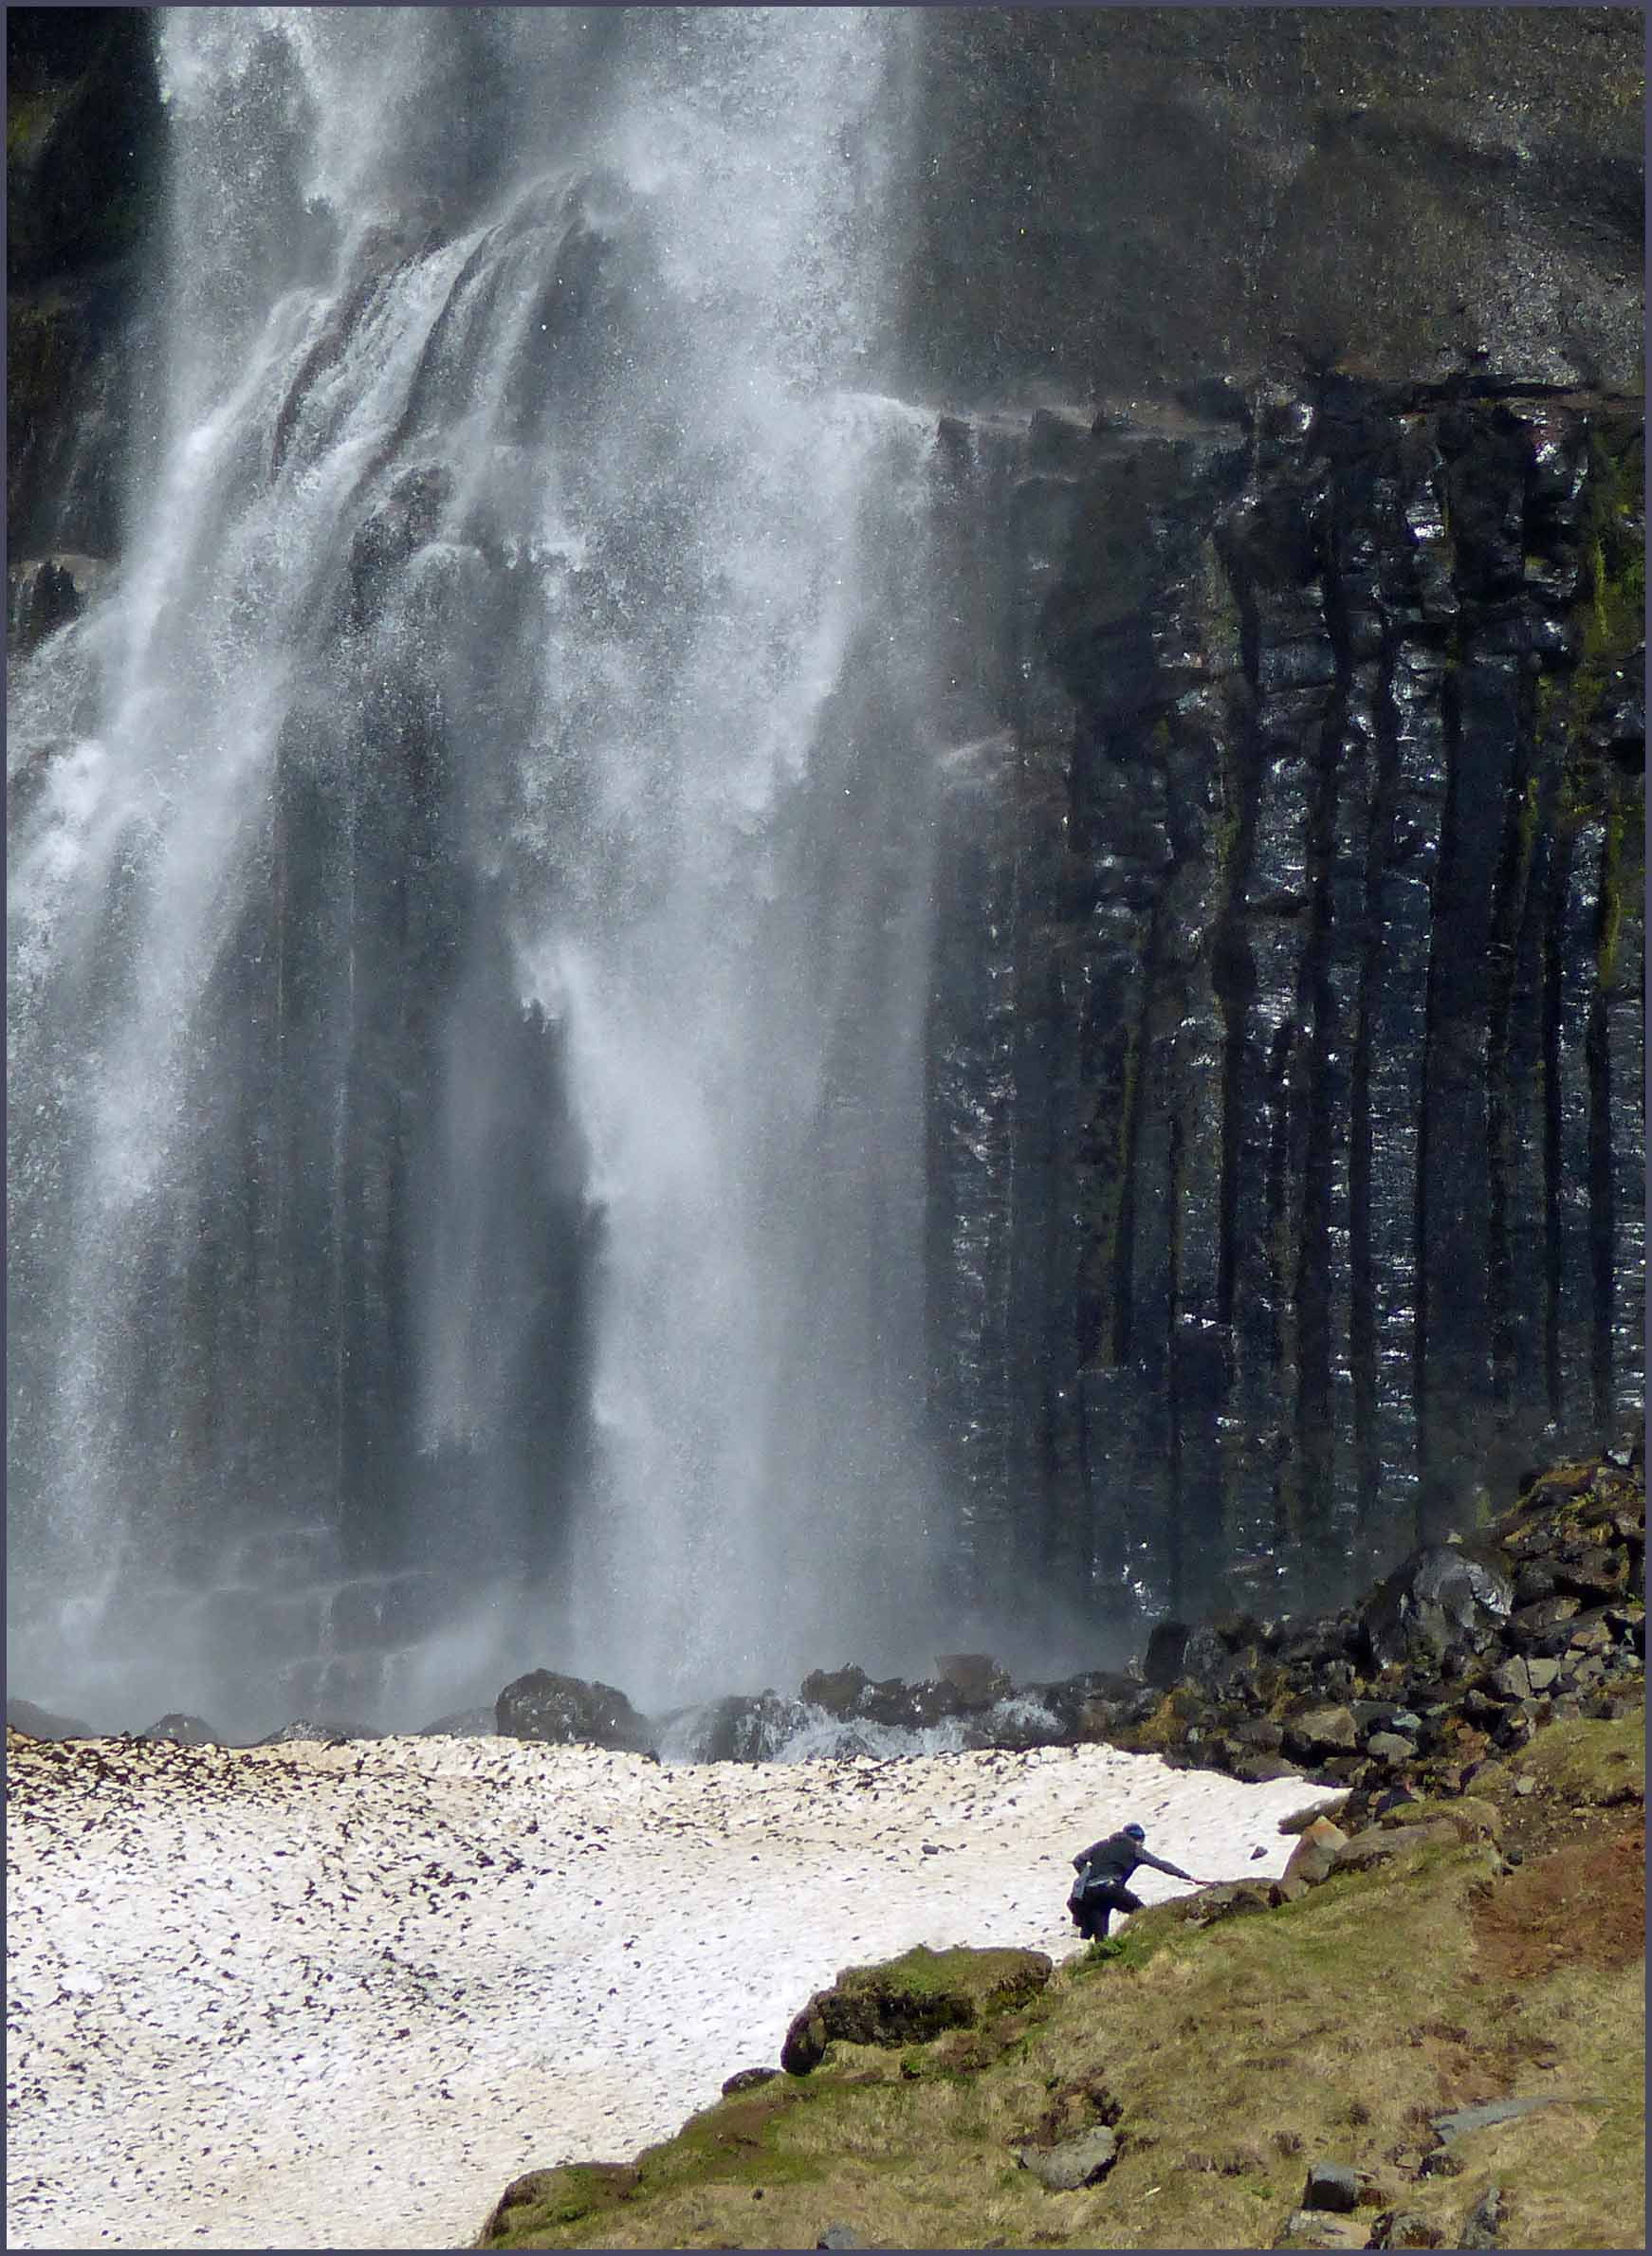 Veil-like waterfall with person in front